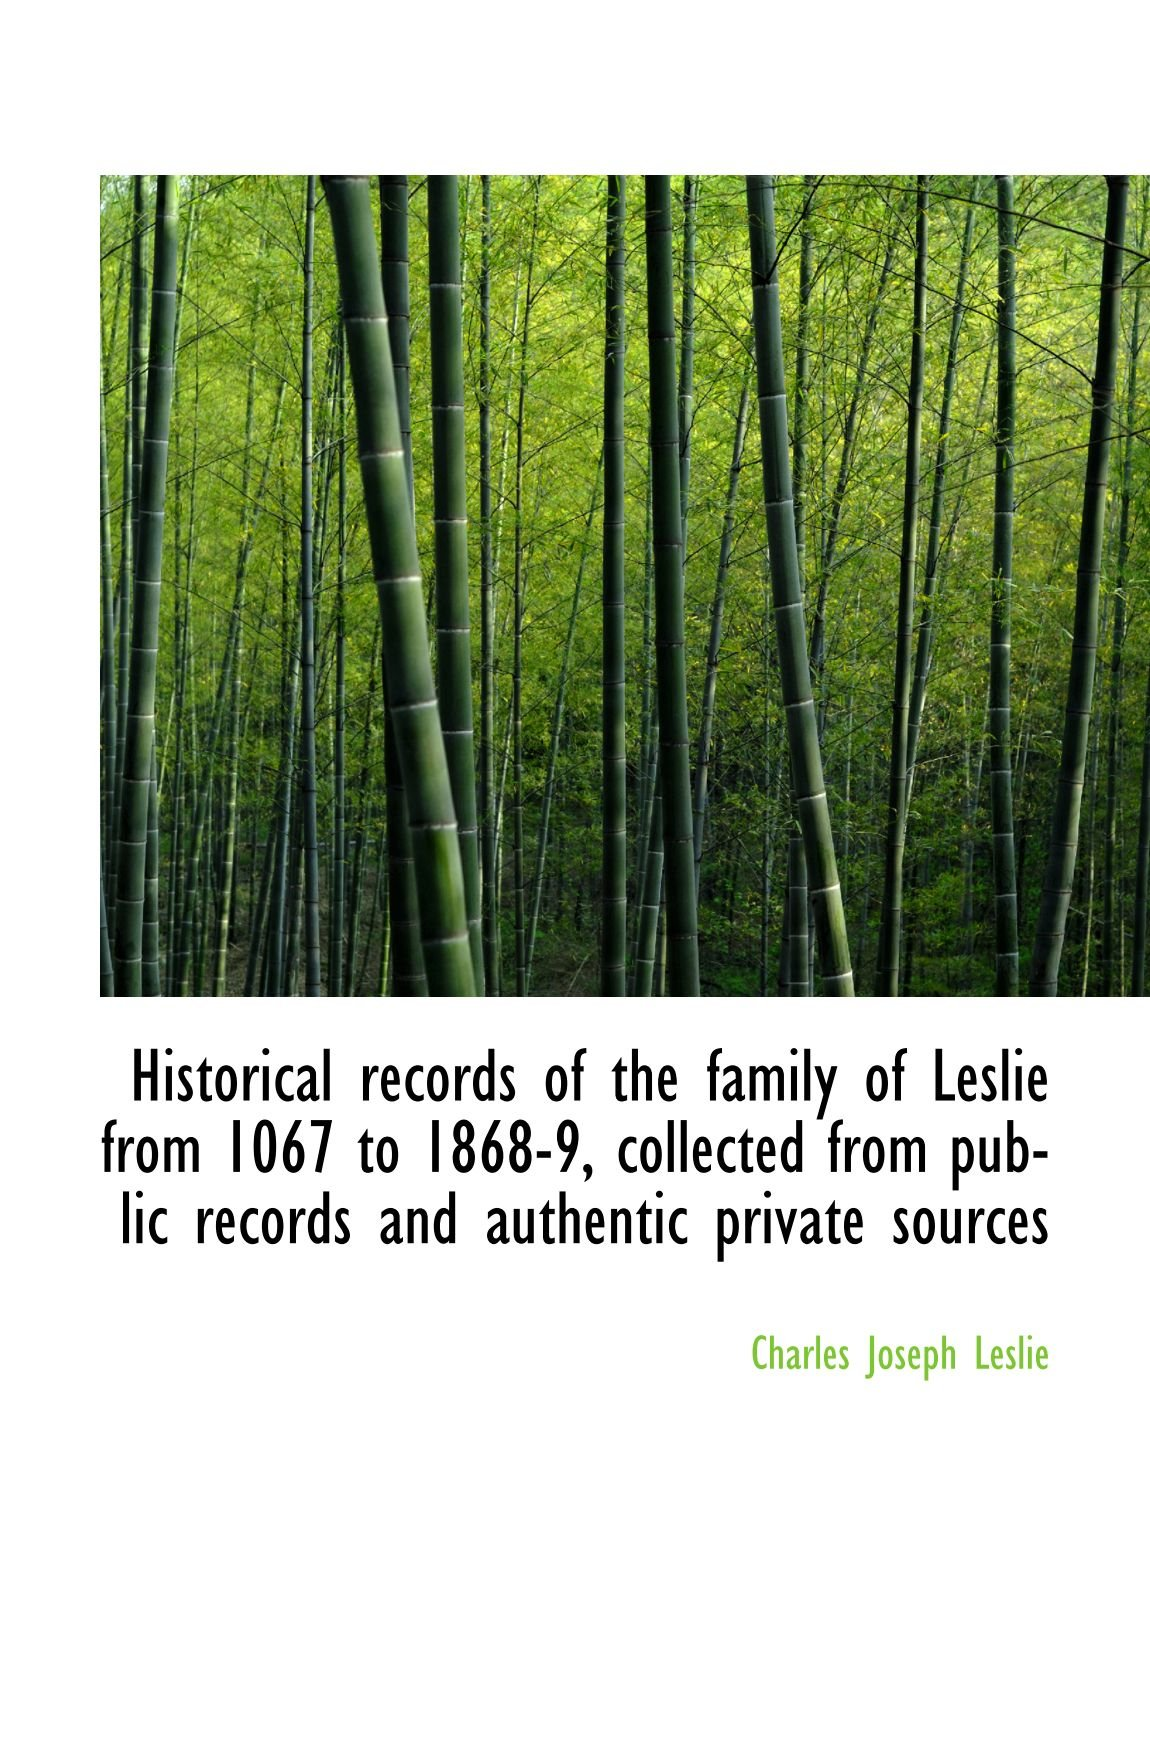 Read Online Historical records of the family of Leslie from 1067 to 1868-9, collected from public records and au ebook